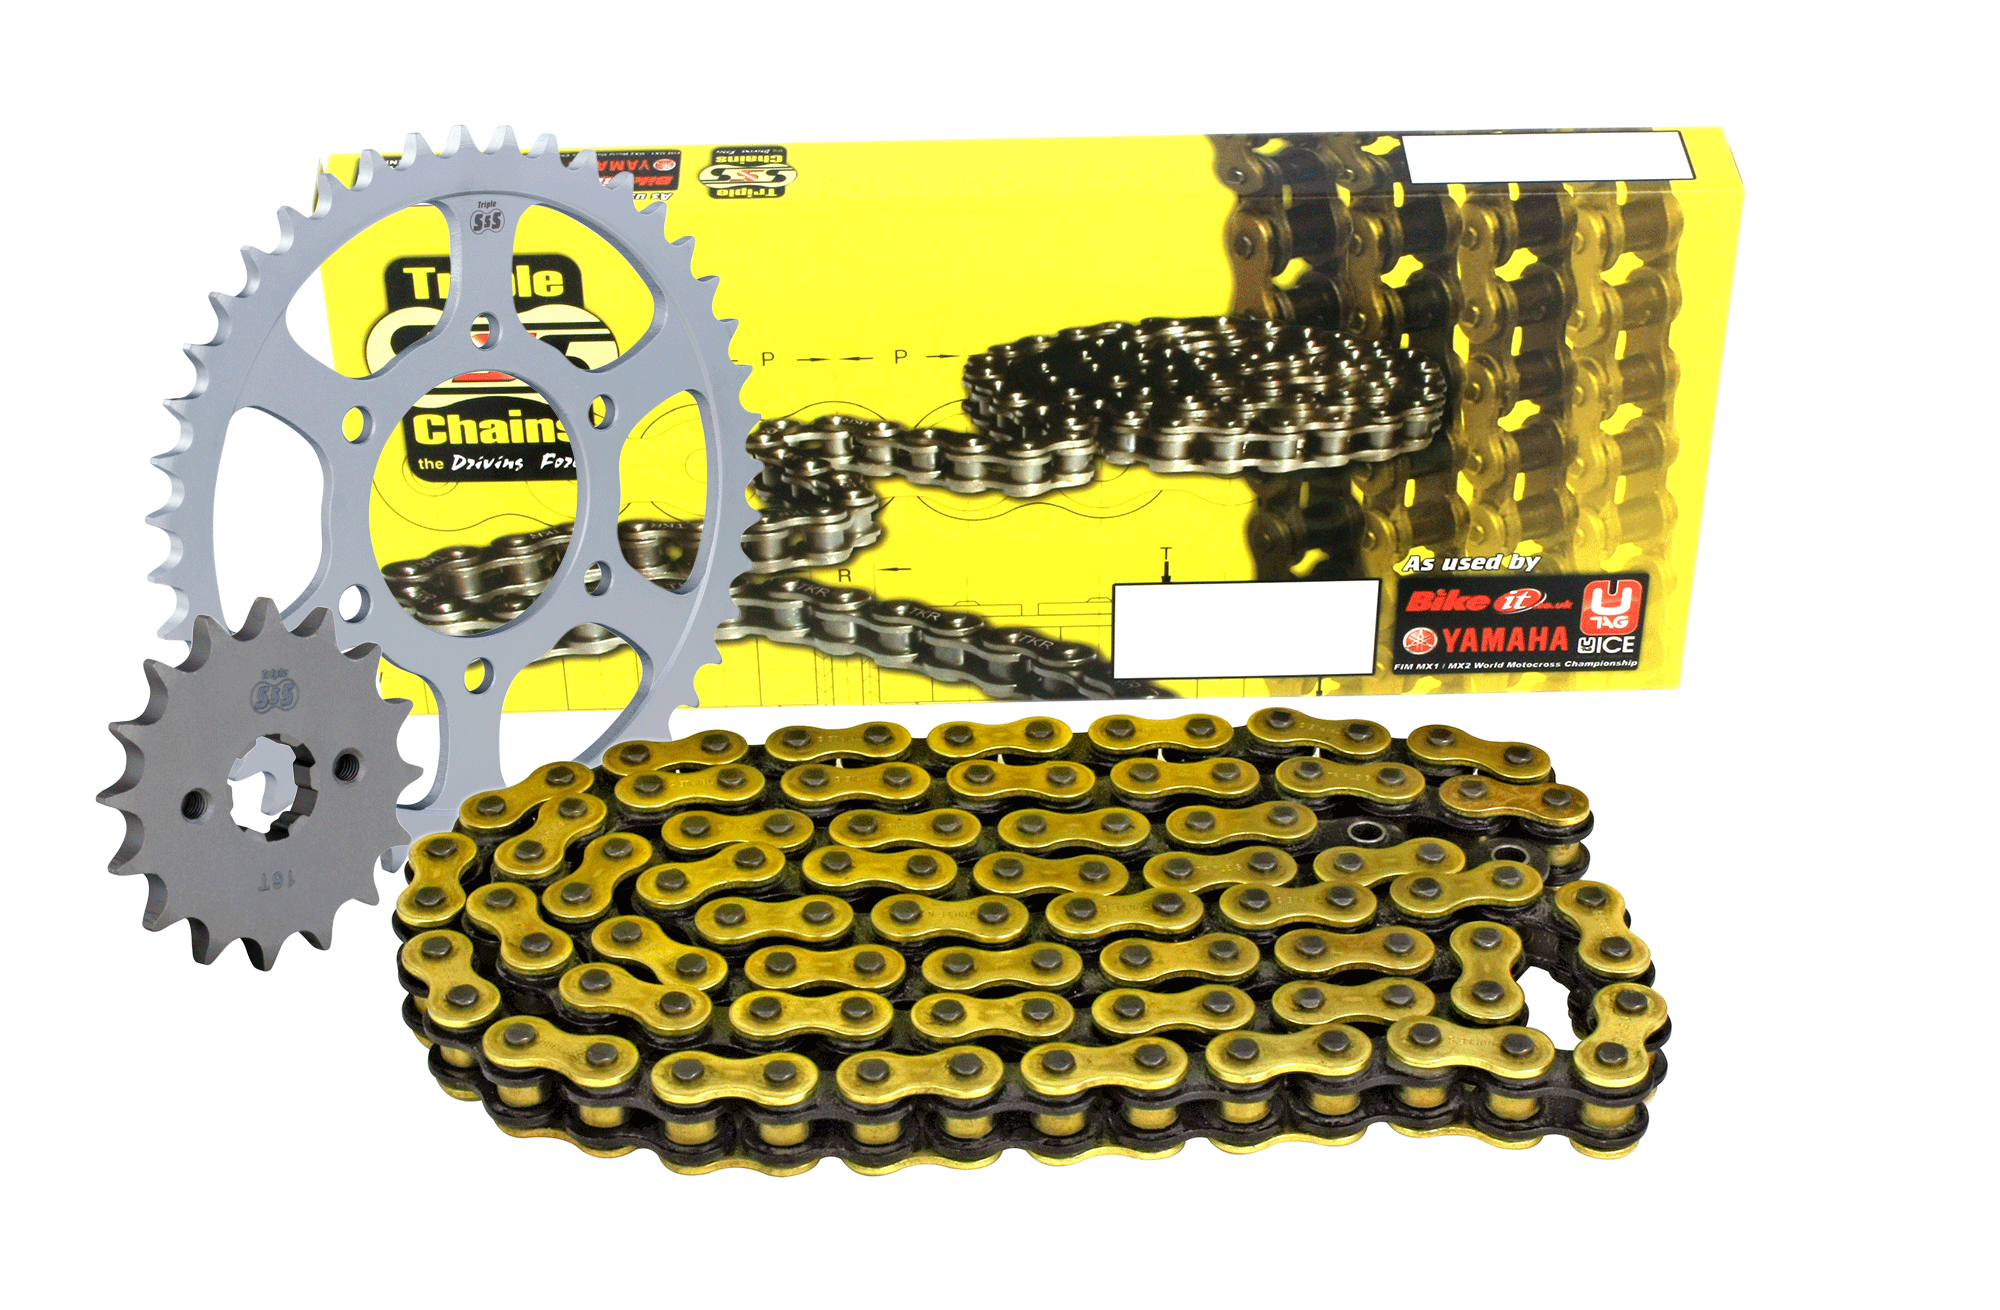 Aprilia 125 Tuono 03-07 Chain & Sprocket Kit: 14T Front, 40T Rear, HD Chain 520H 104Link